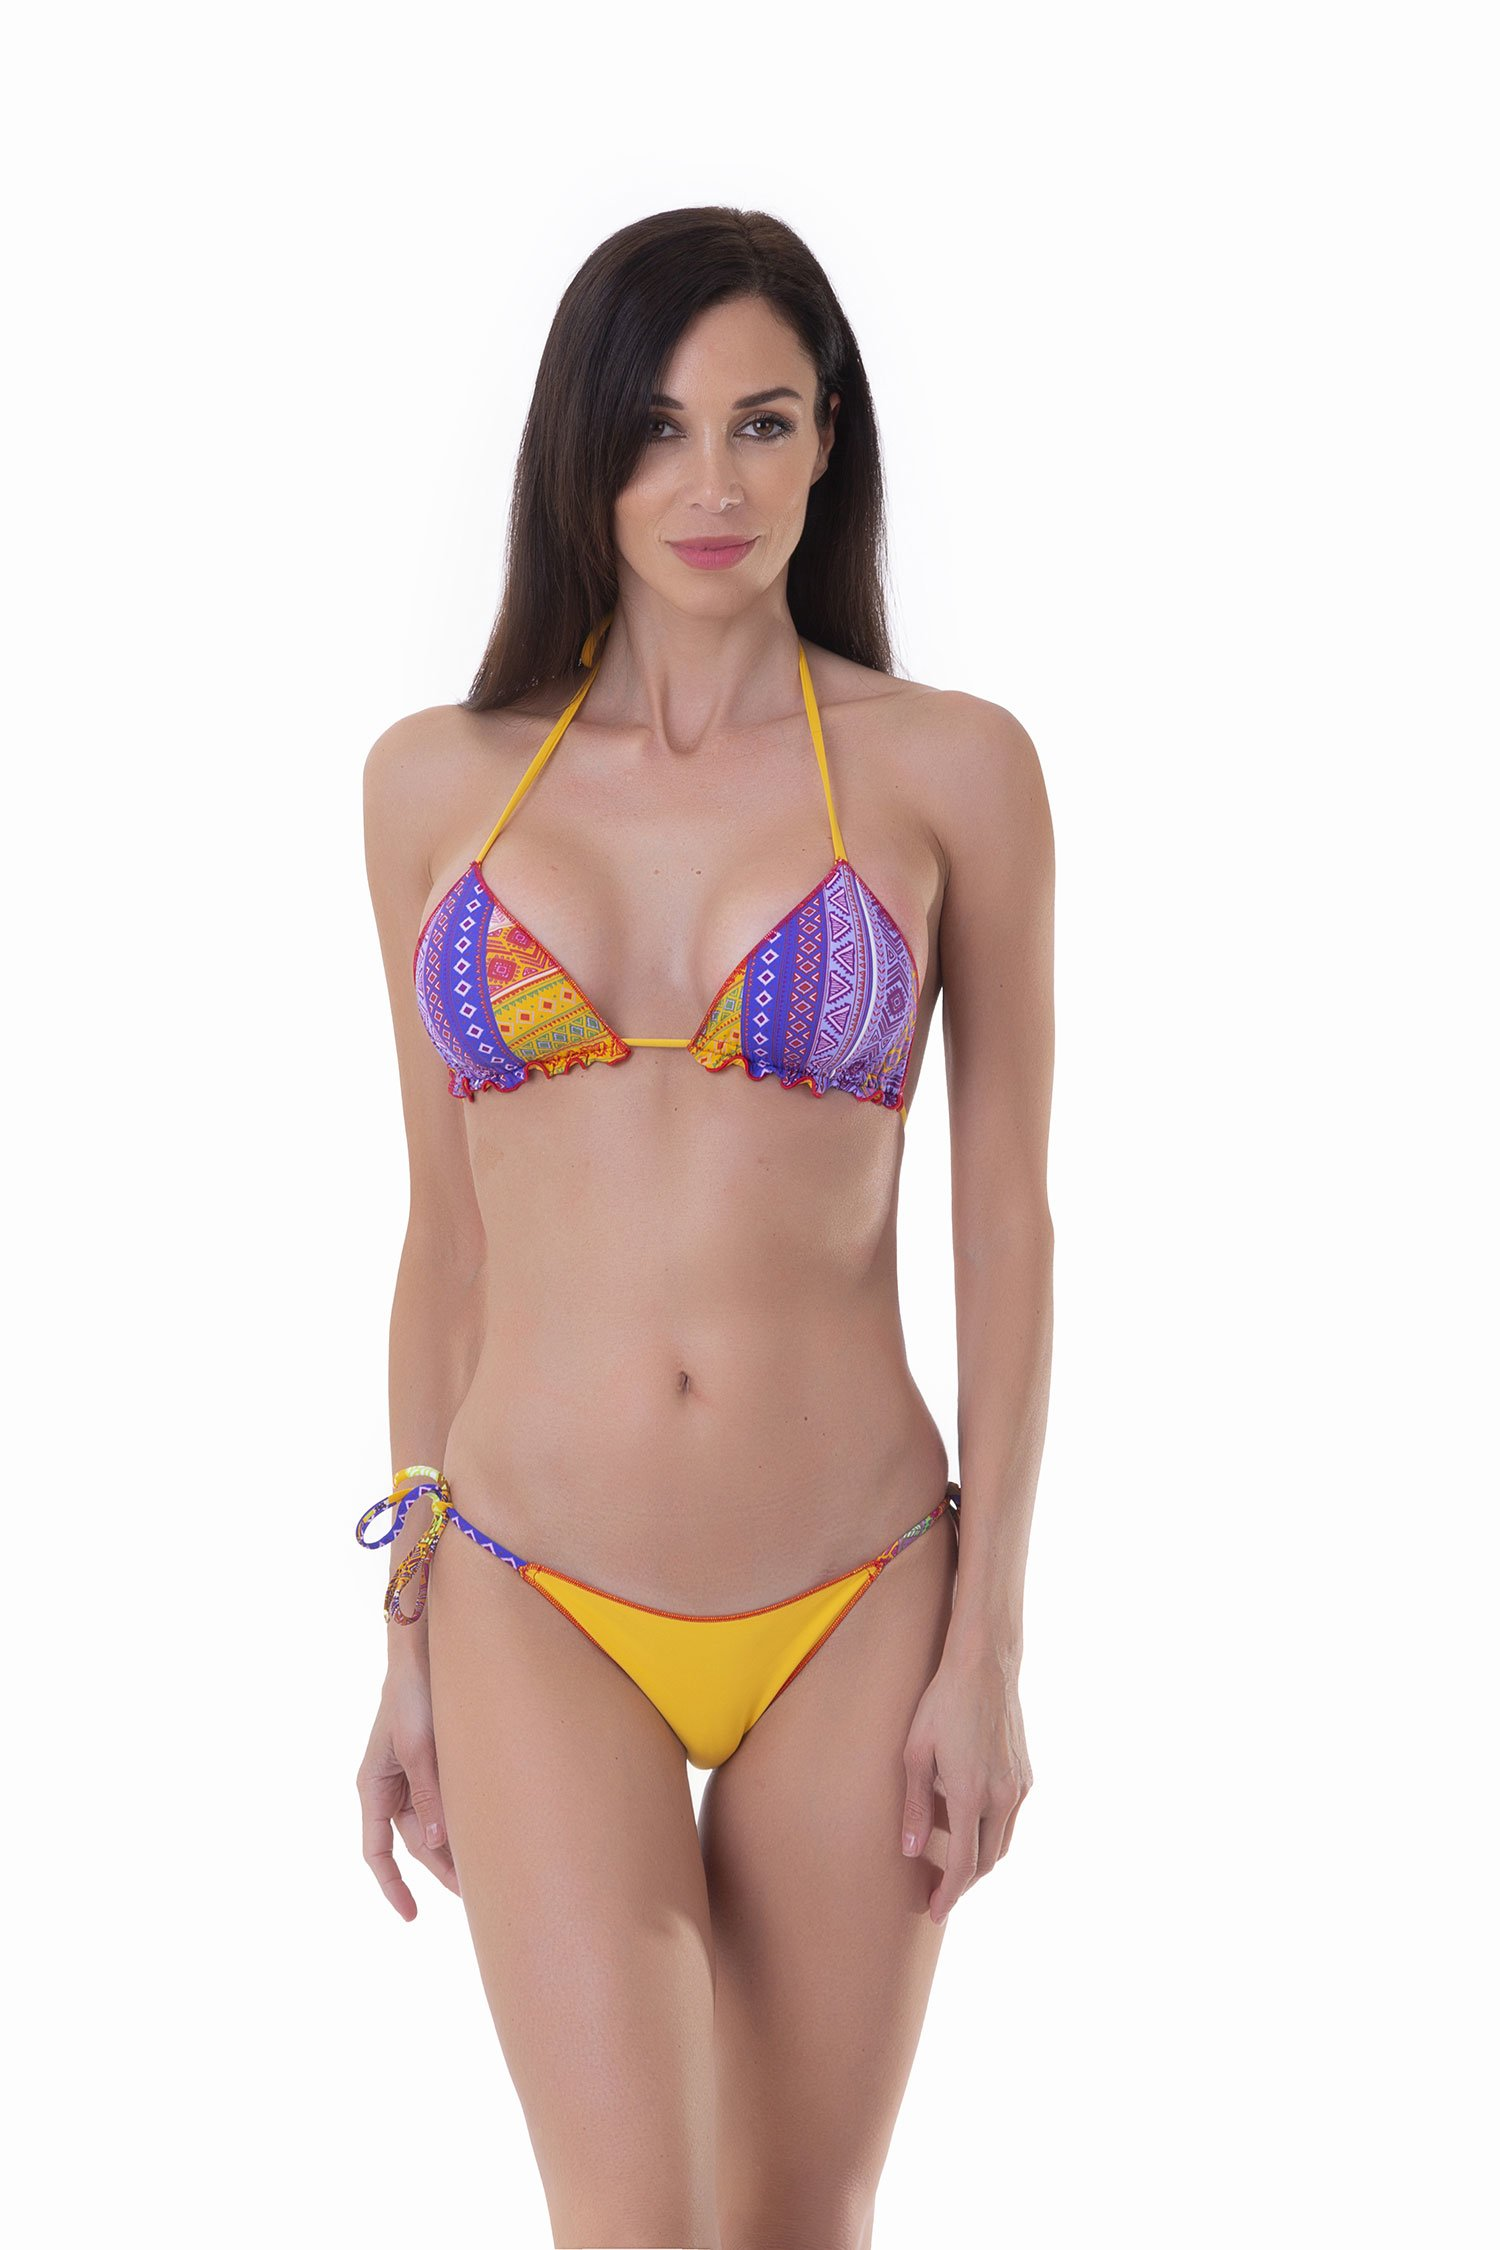 TRIANGLE BIKINI MIX PRINTED+SOLID COLOR - Etar+Migi